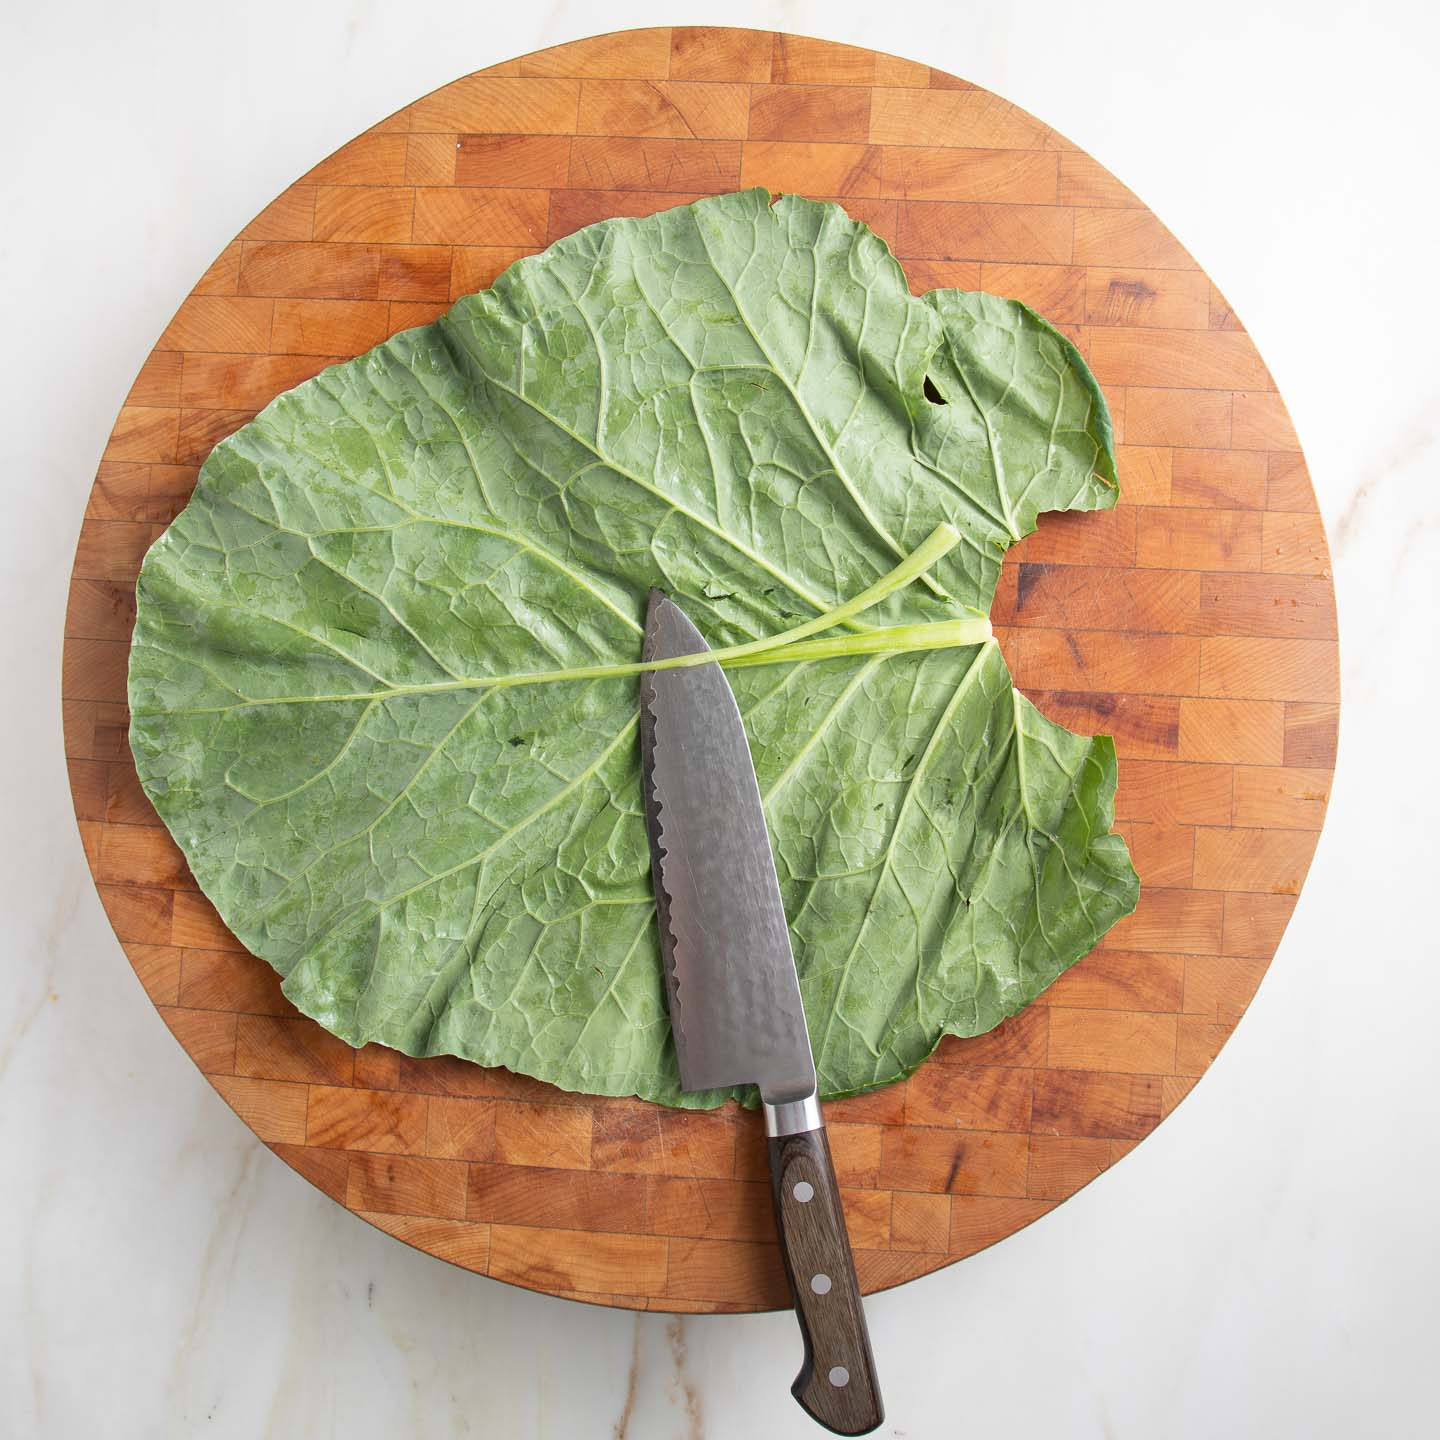 Round wooden cutting board with a large leaf of collard green.  Knife is cutting along the firm stem (backbone) to make the collard pliable for wrapping.